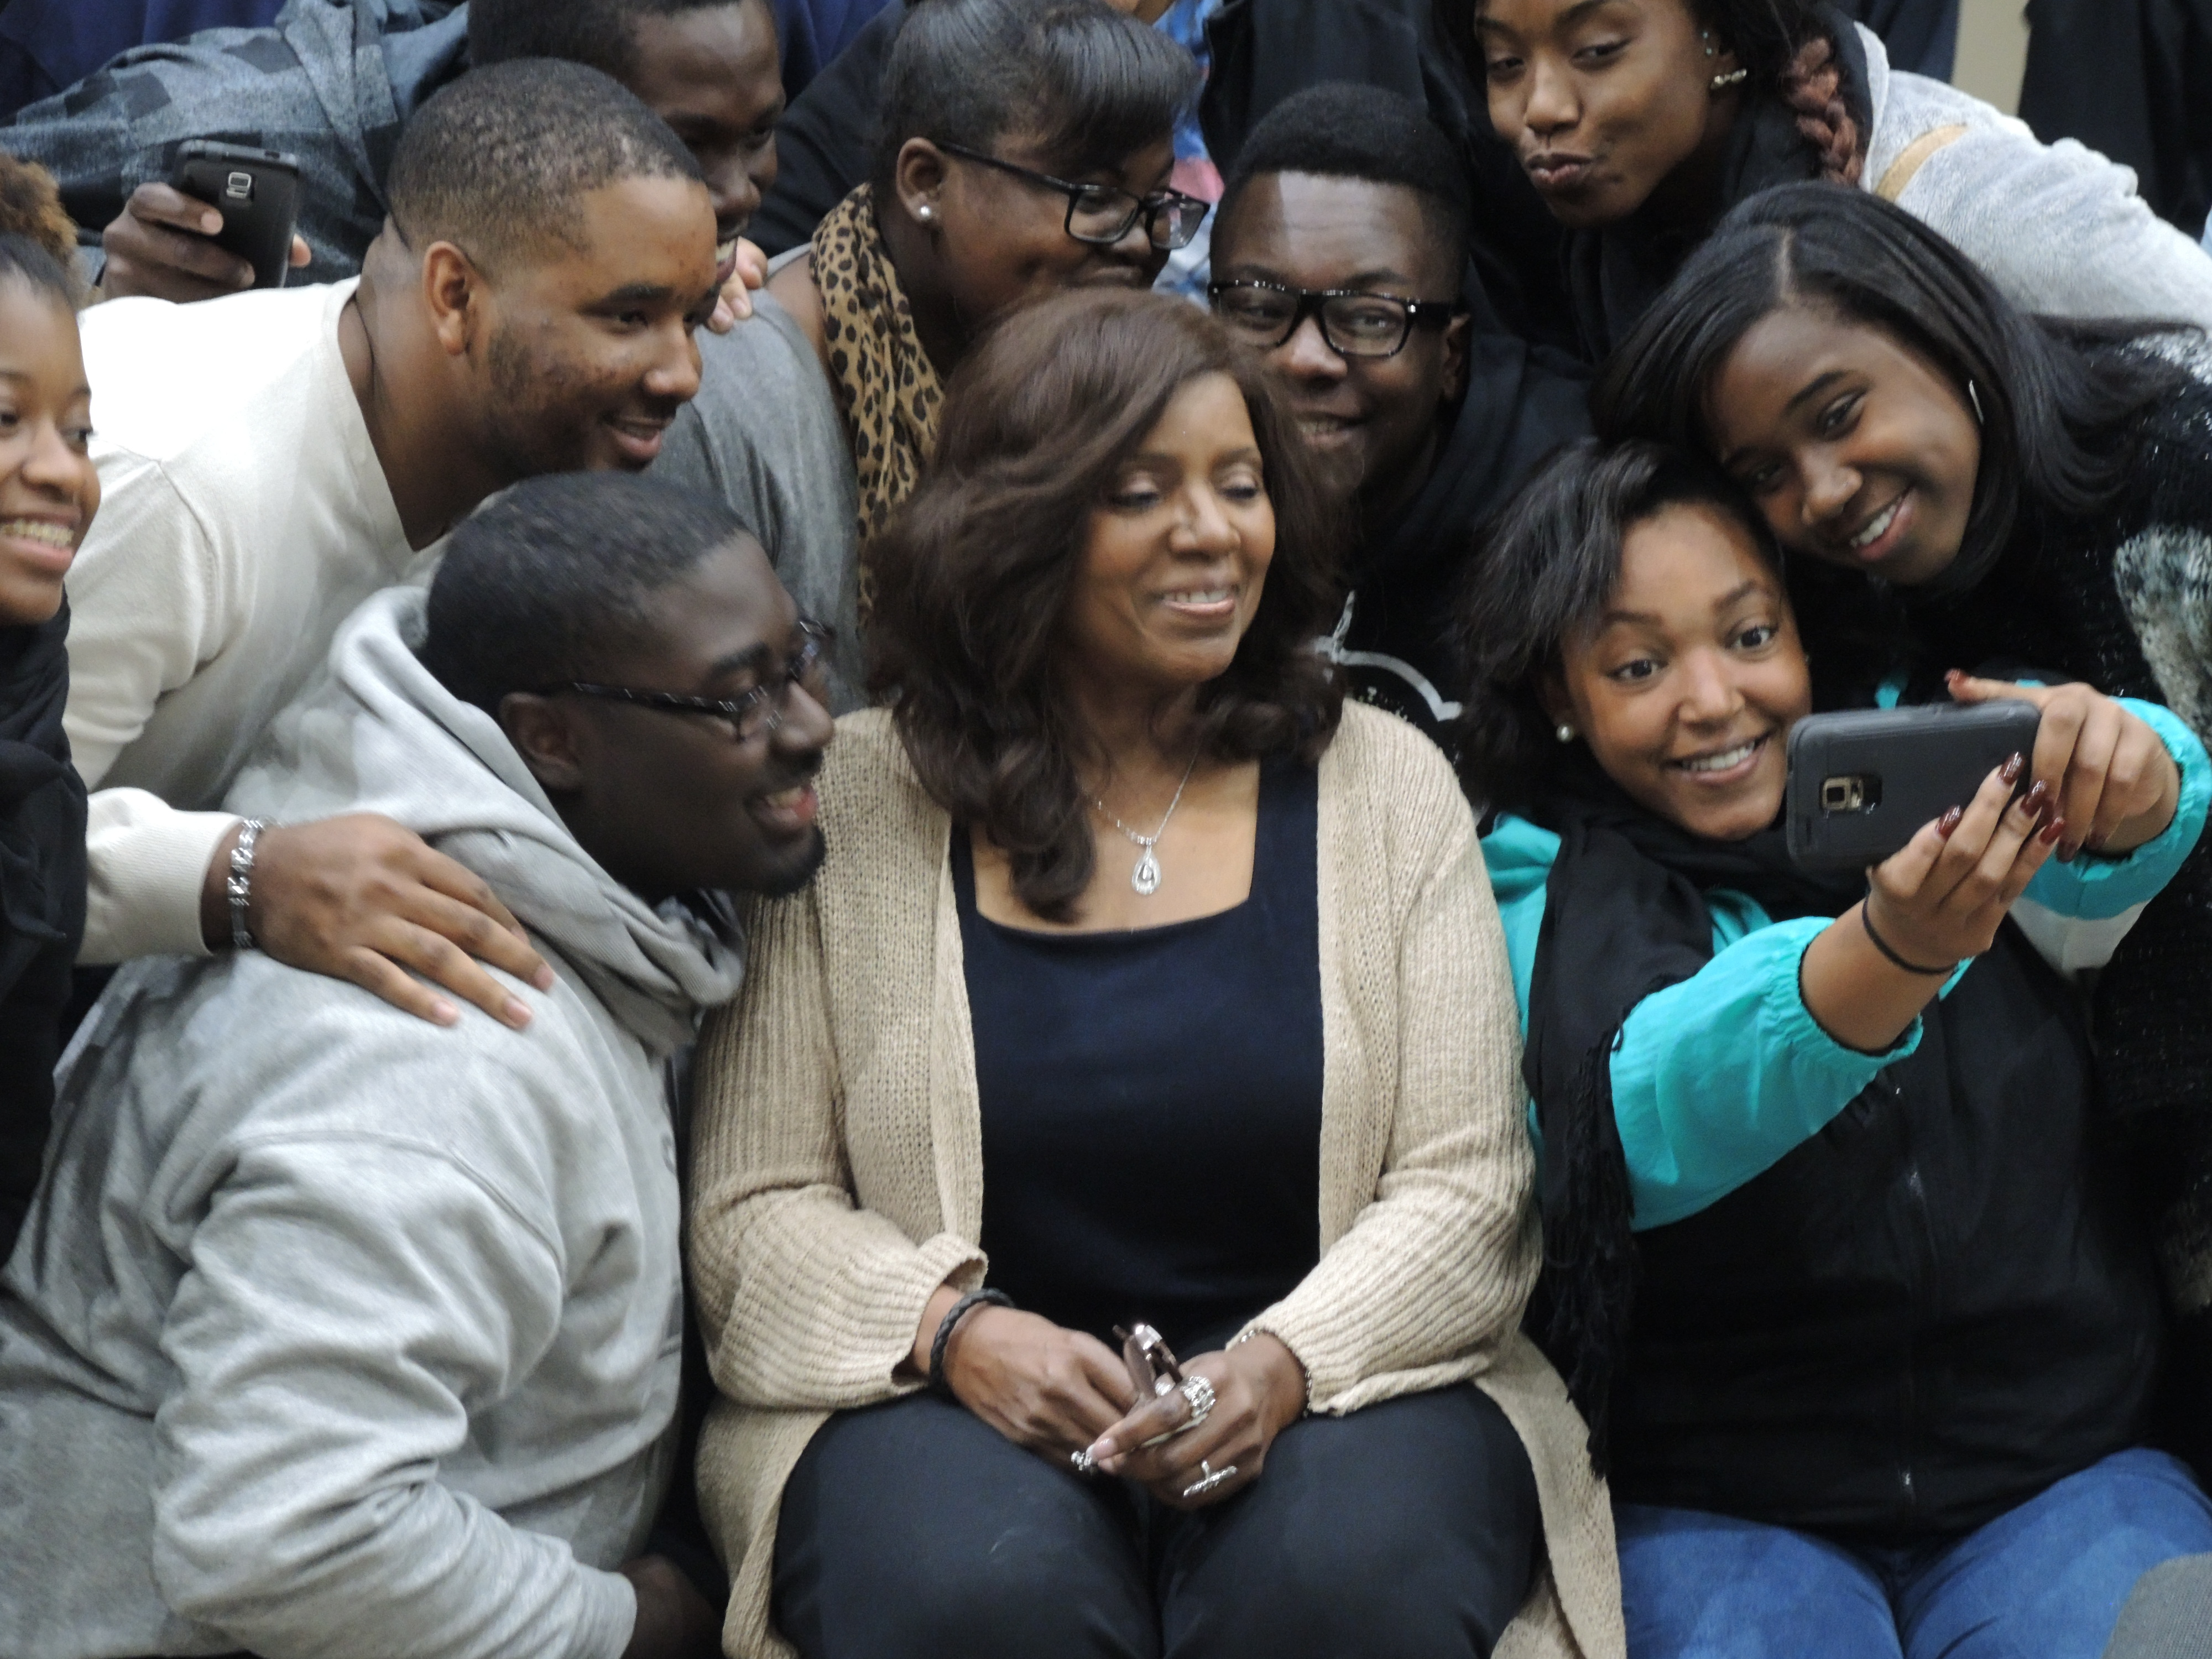 The students took selfies with Gloria.